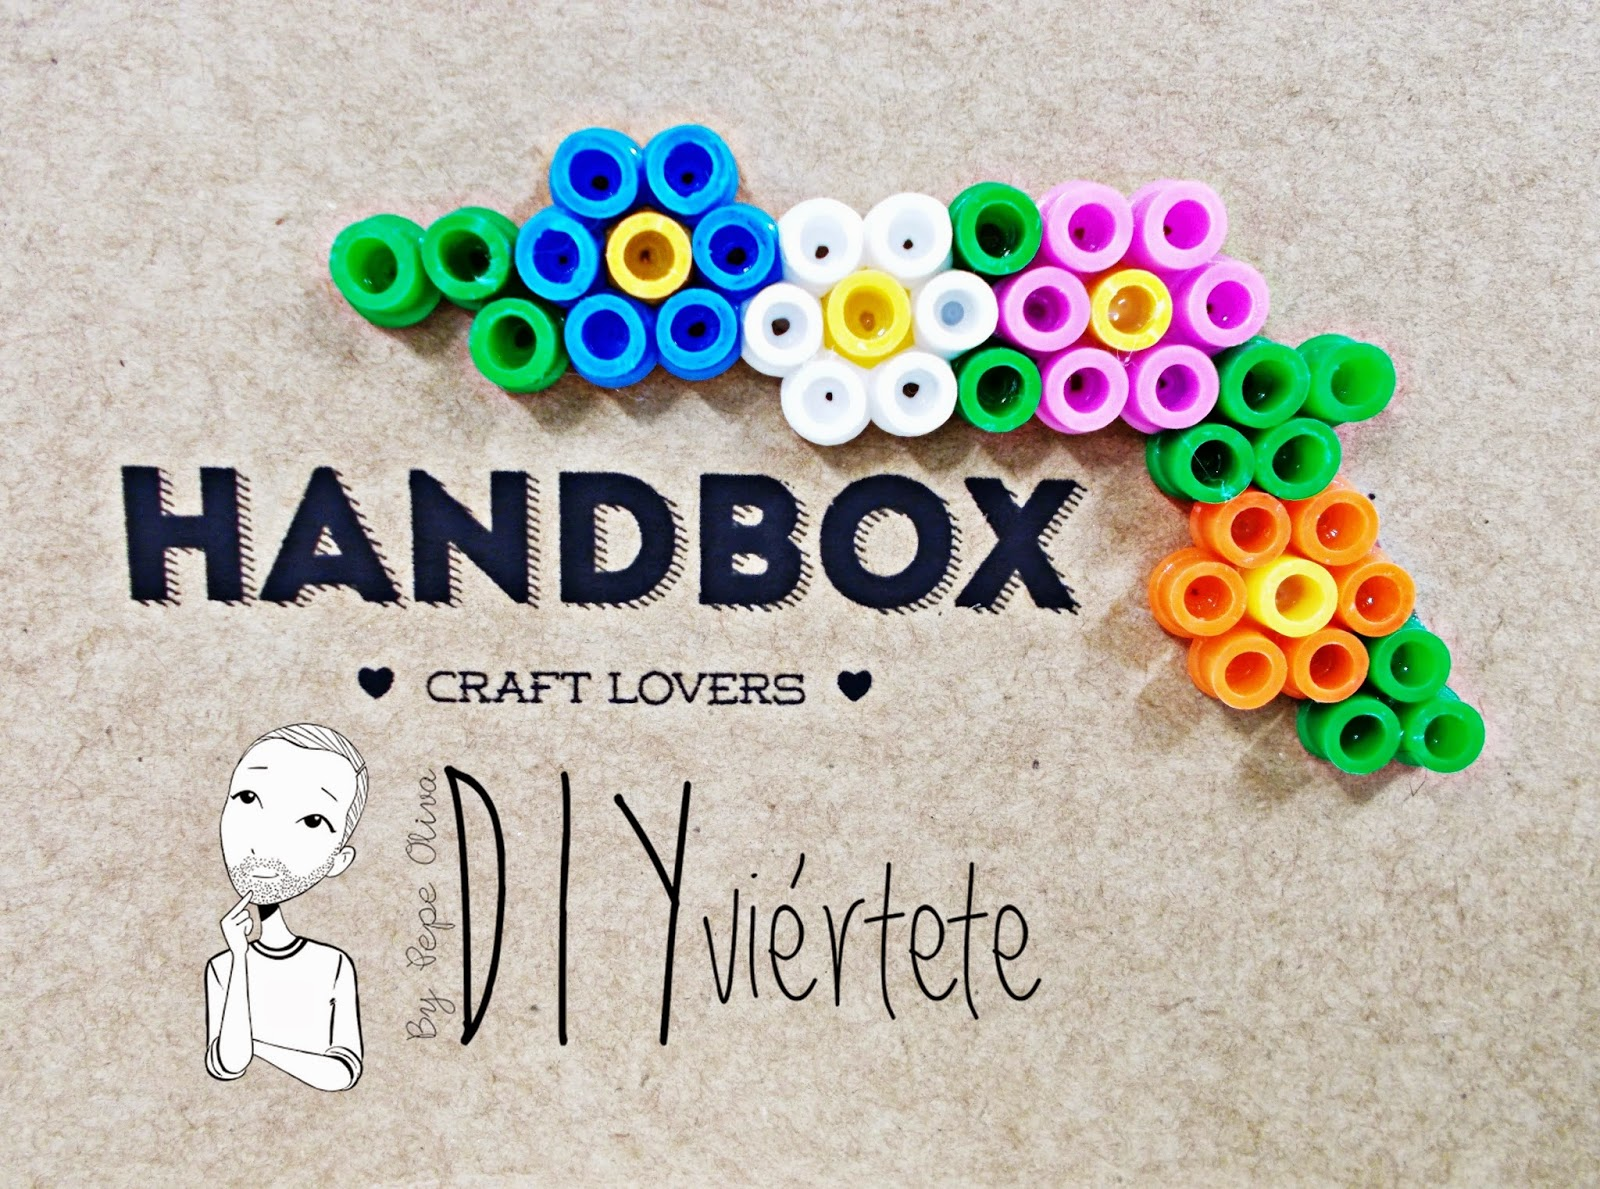 DIY-Do It Yourself-caja-cartón-selfpackaging-customizar-handbox-yodona-diyhuntersday-craftlovers-5